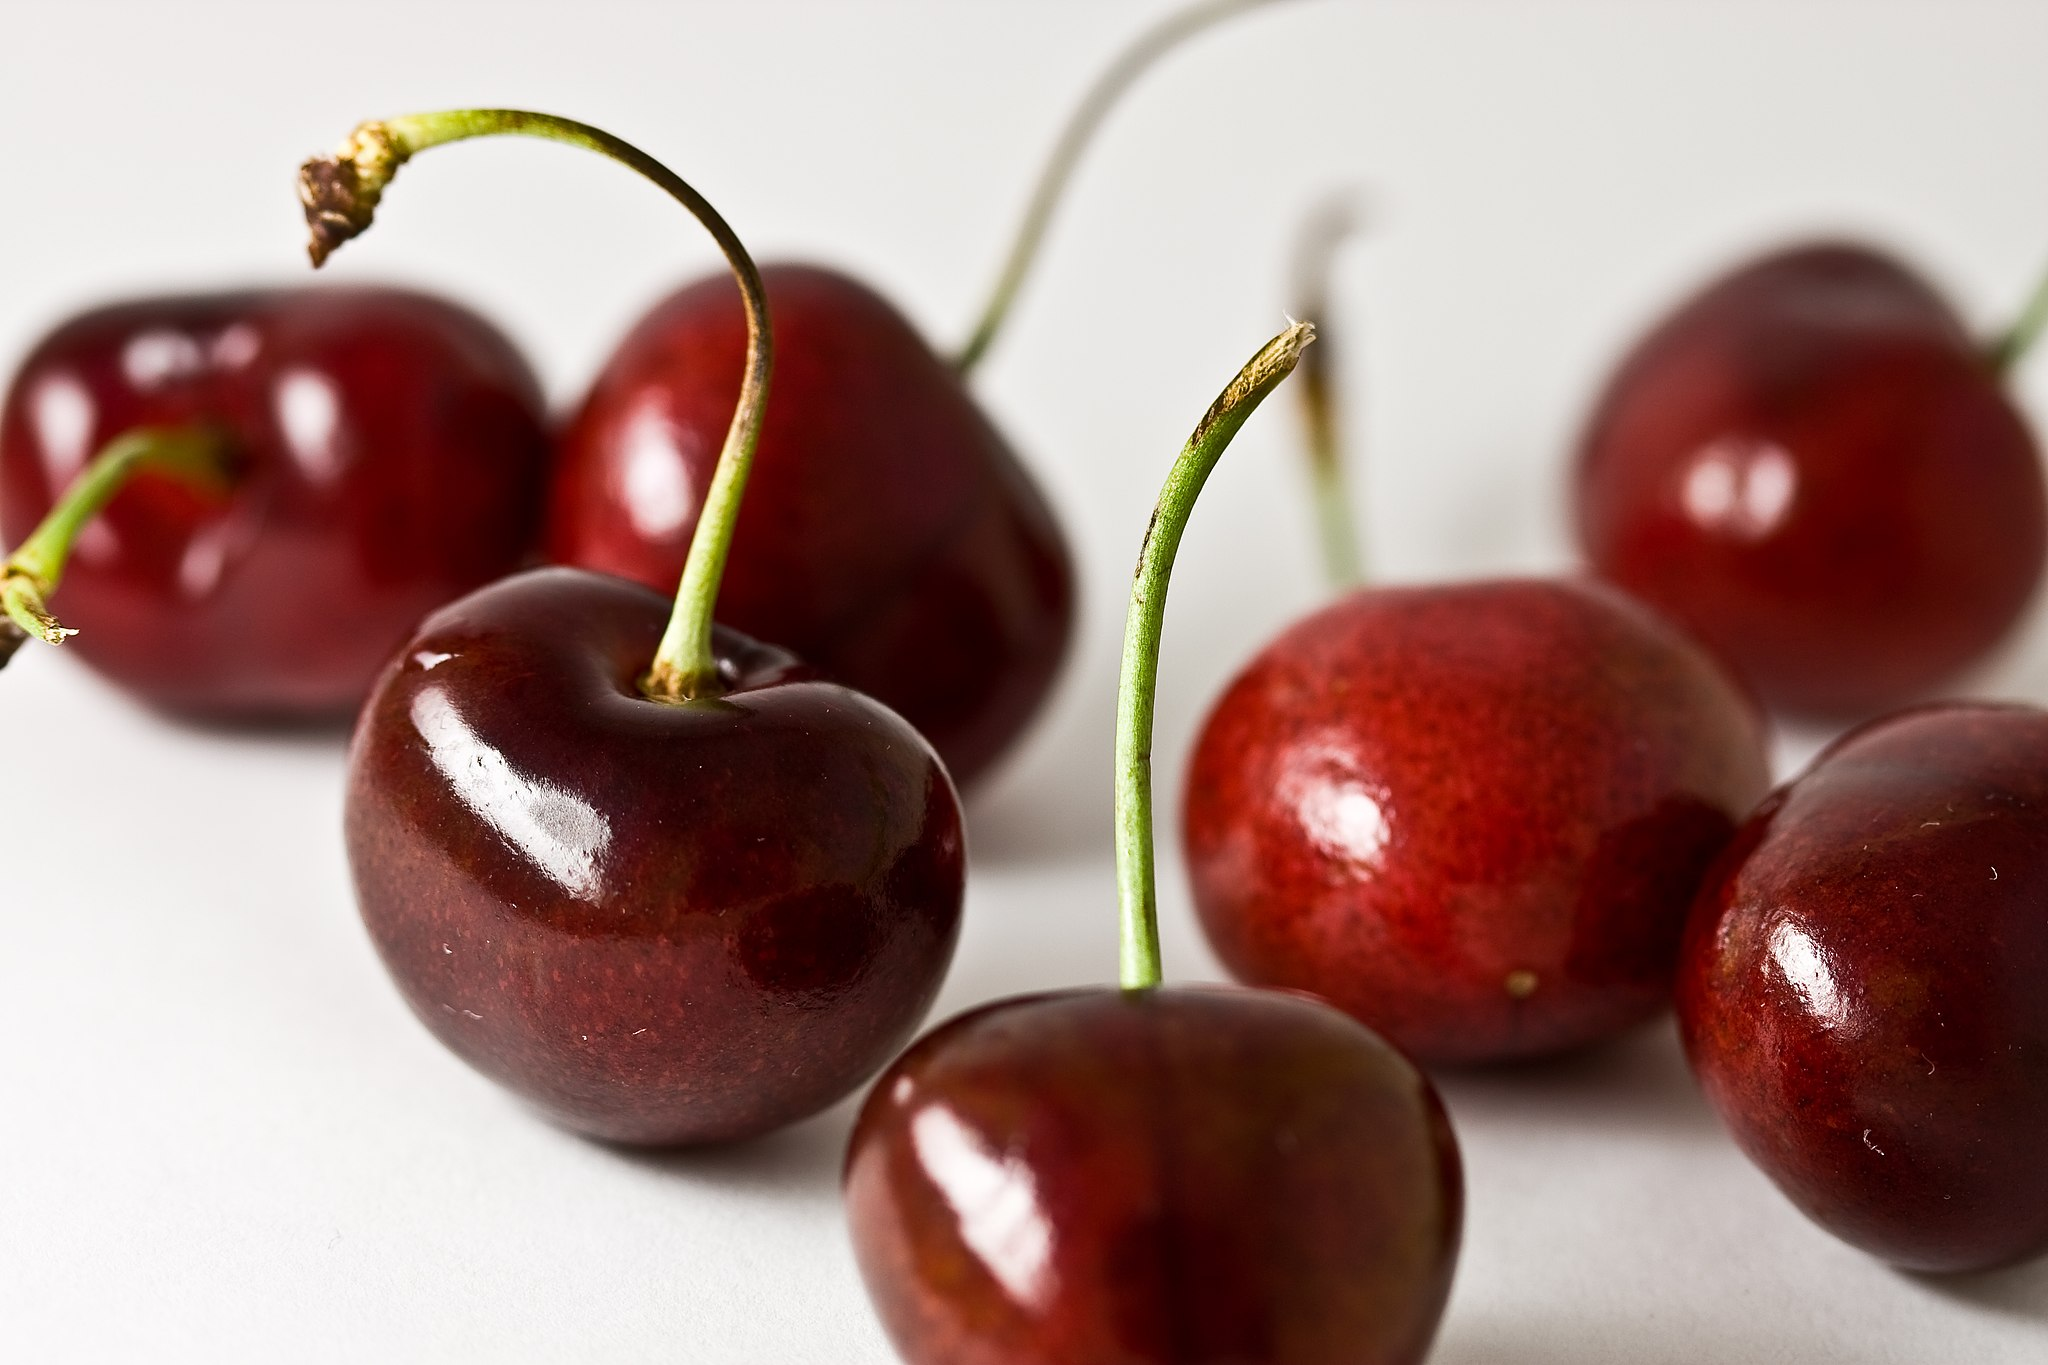 No more than the weight of a cherry